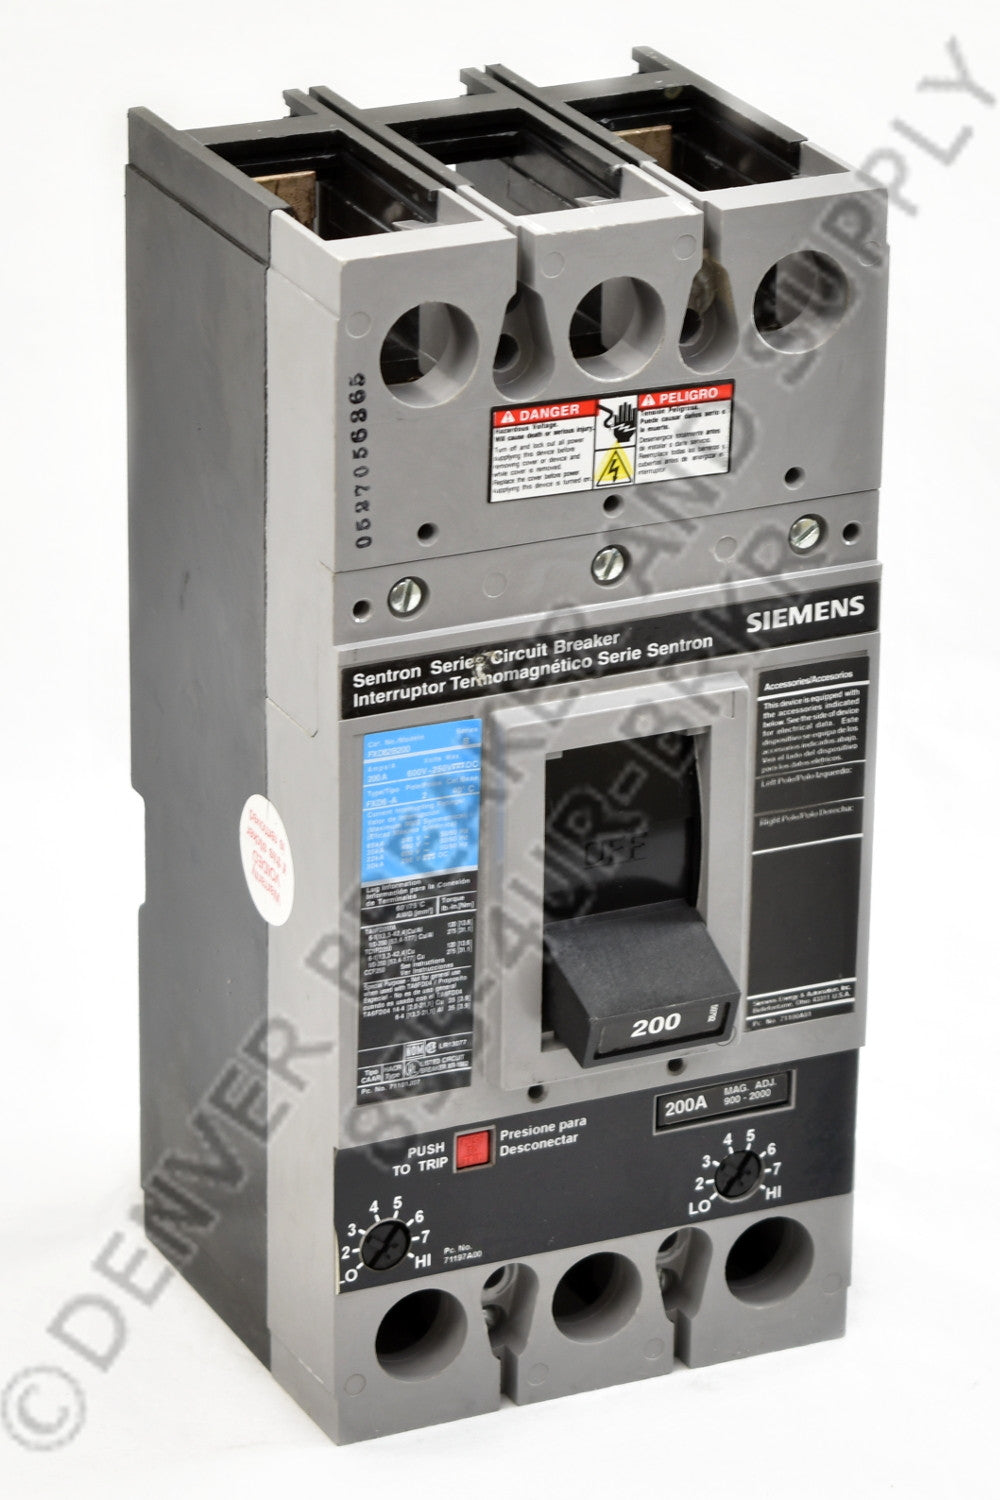 Siemens FD62B080 Circuit Breakers